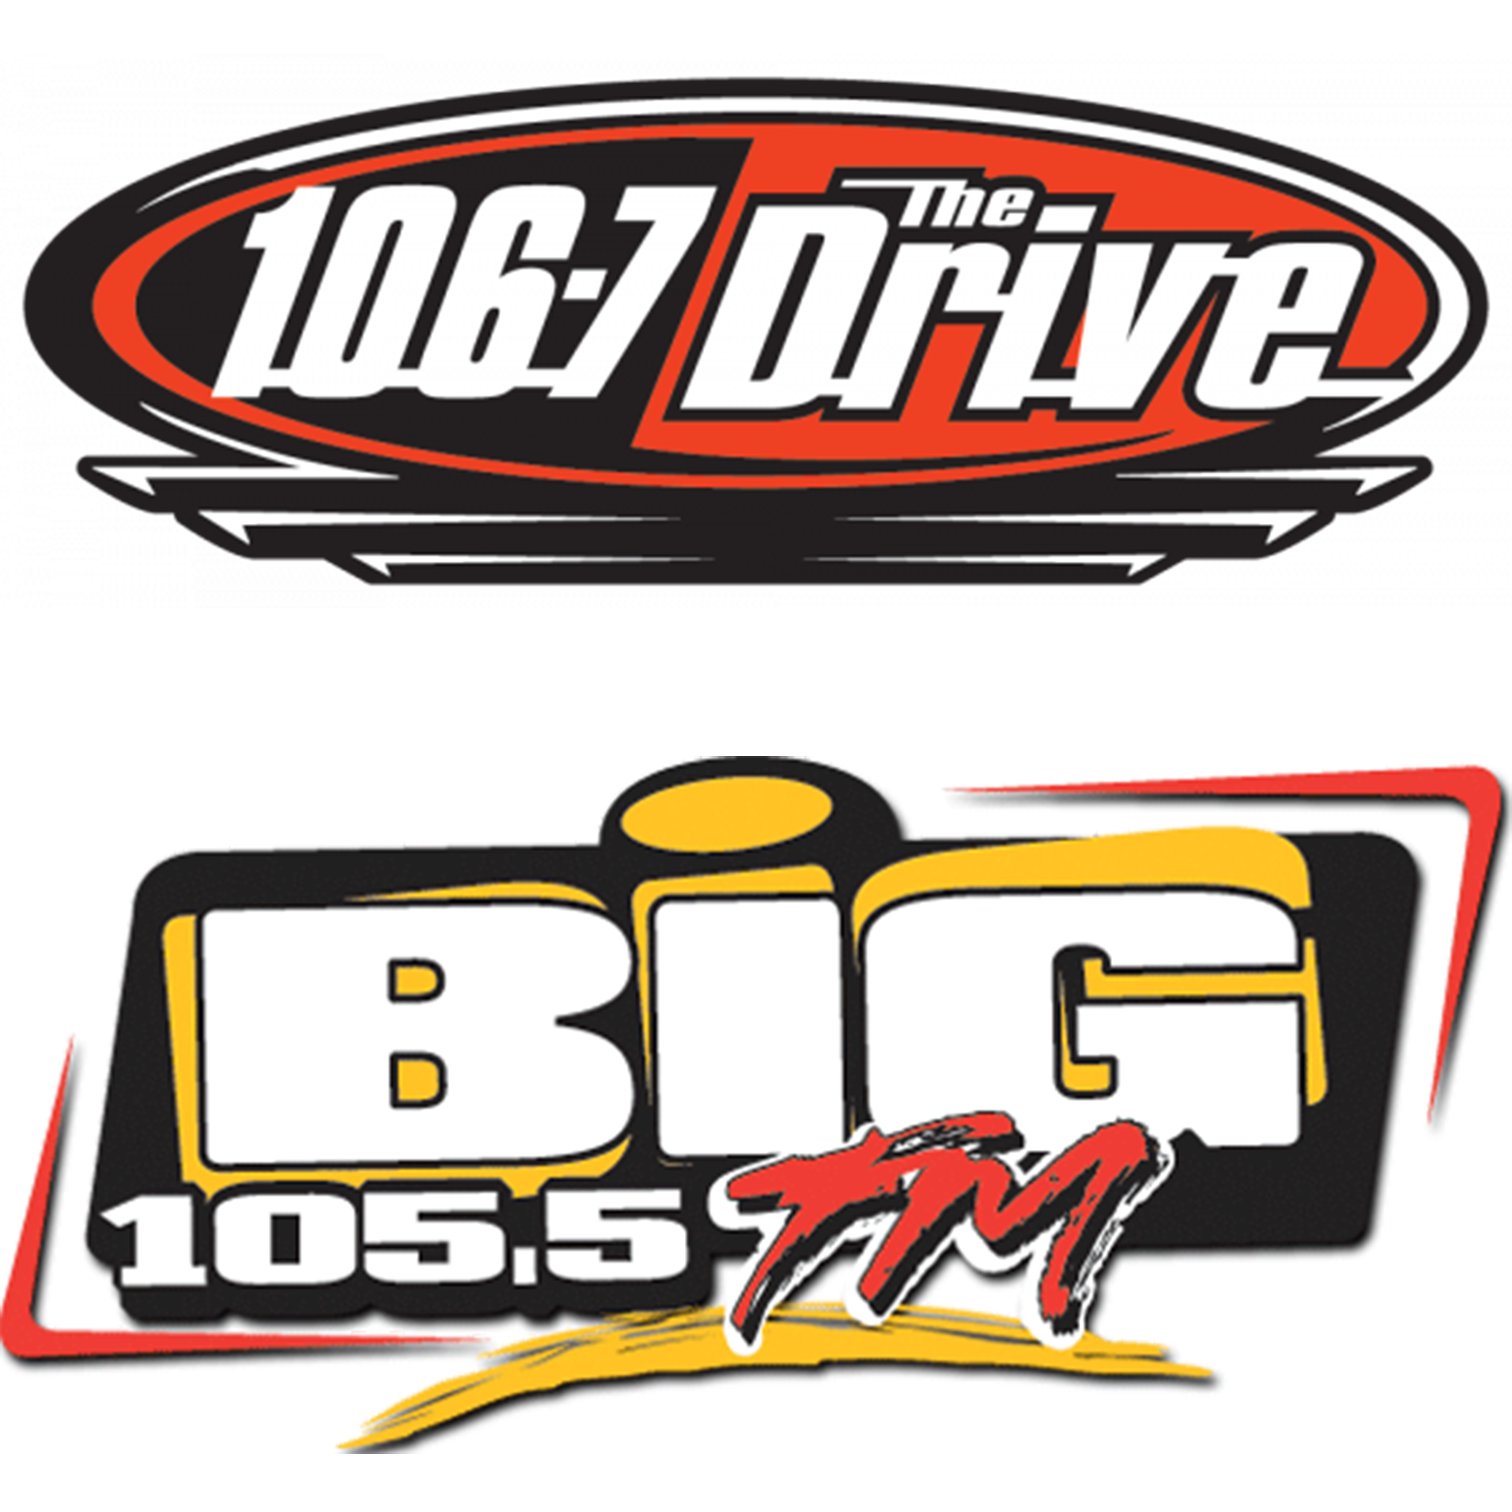 106.7 The drive & BIG 105.5 FM